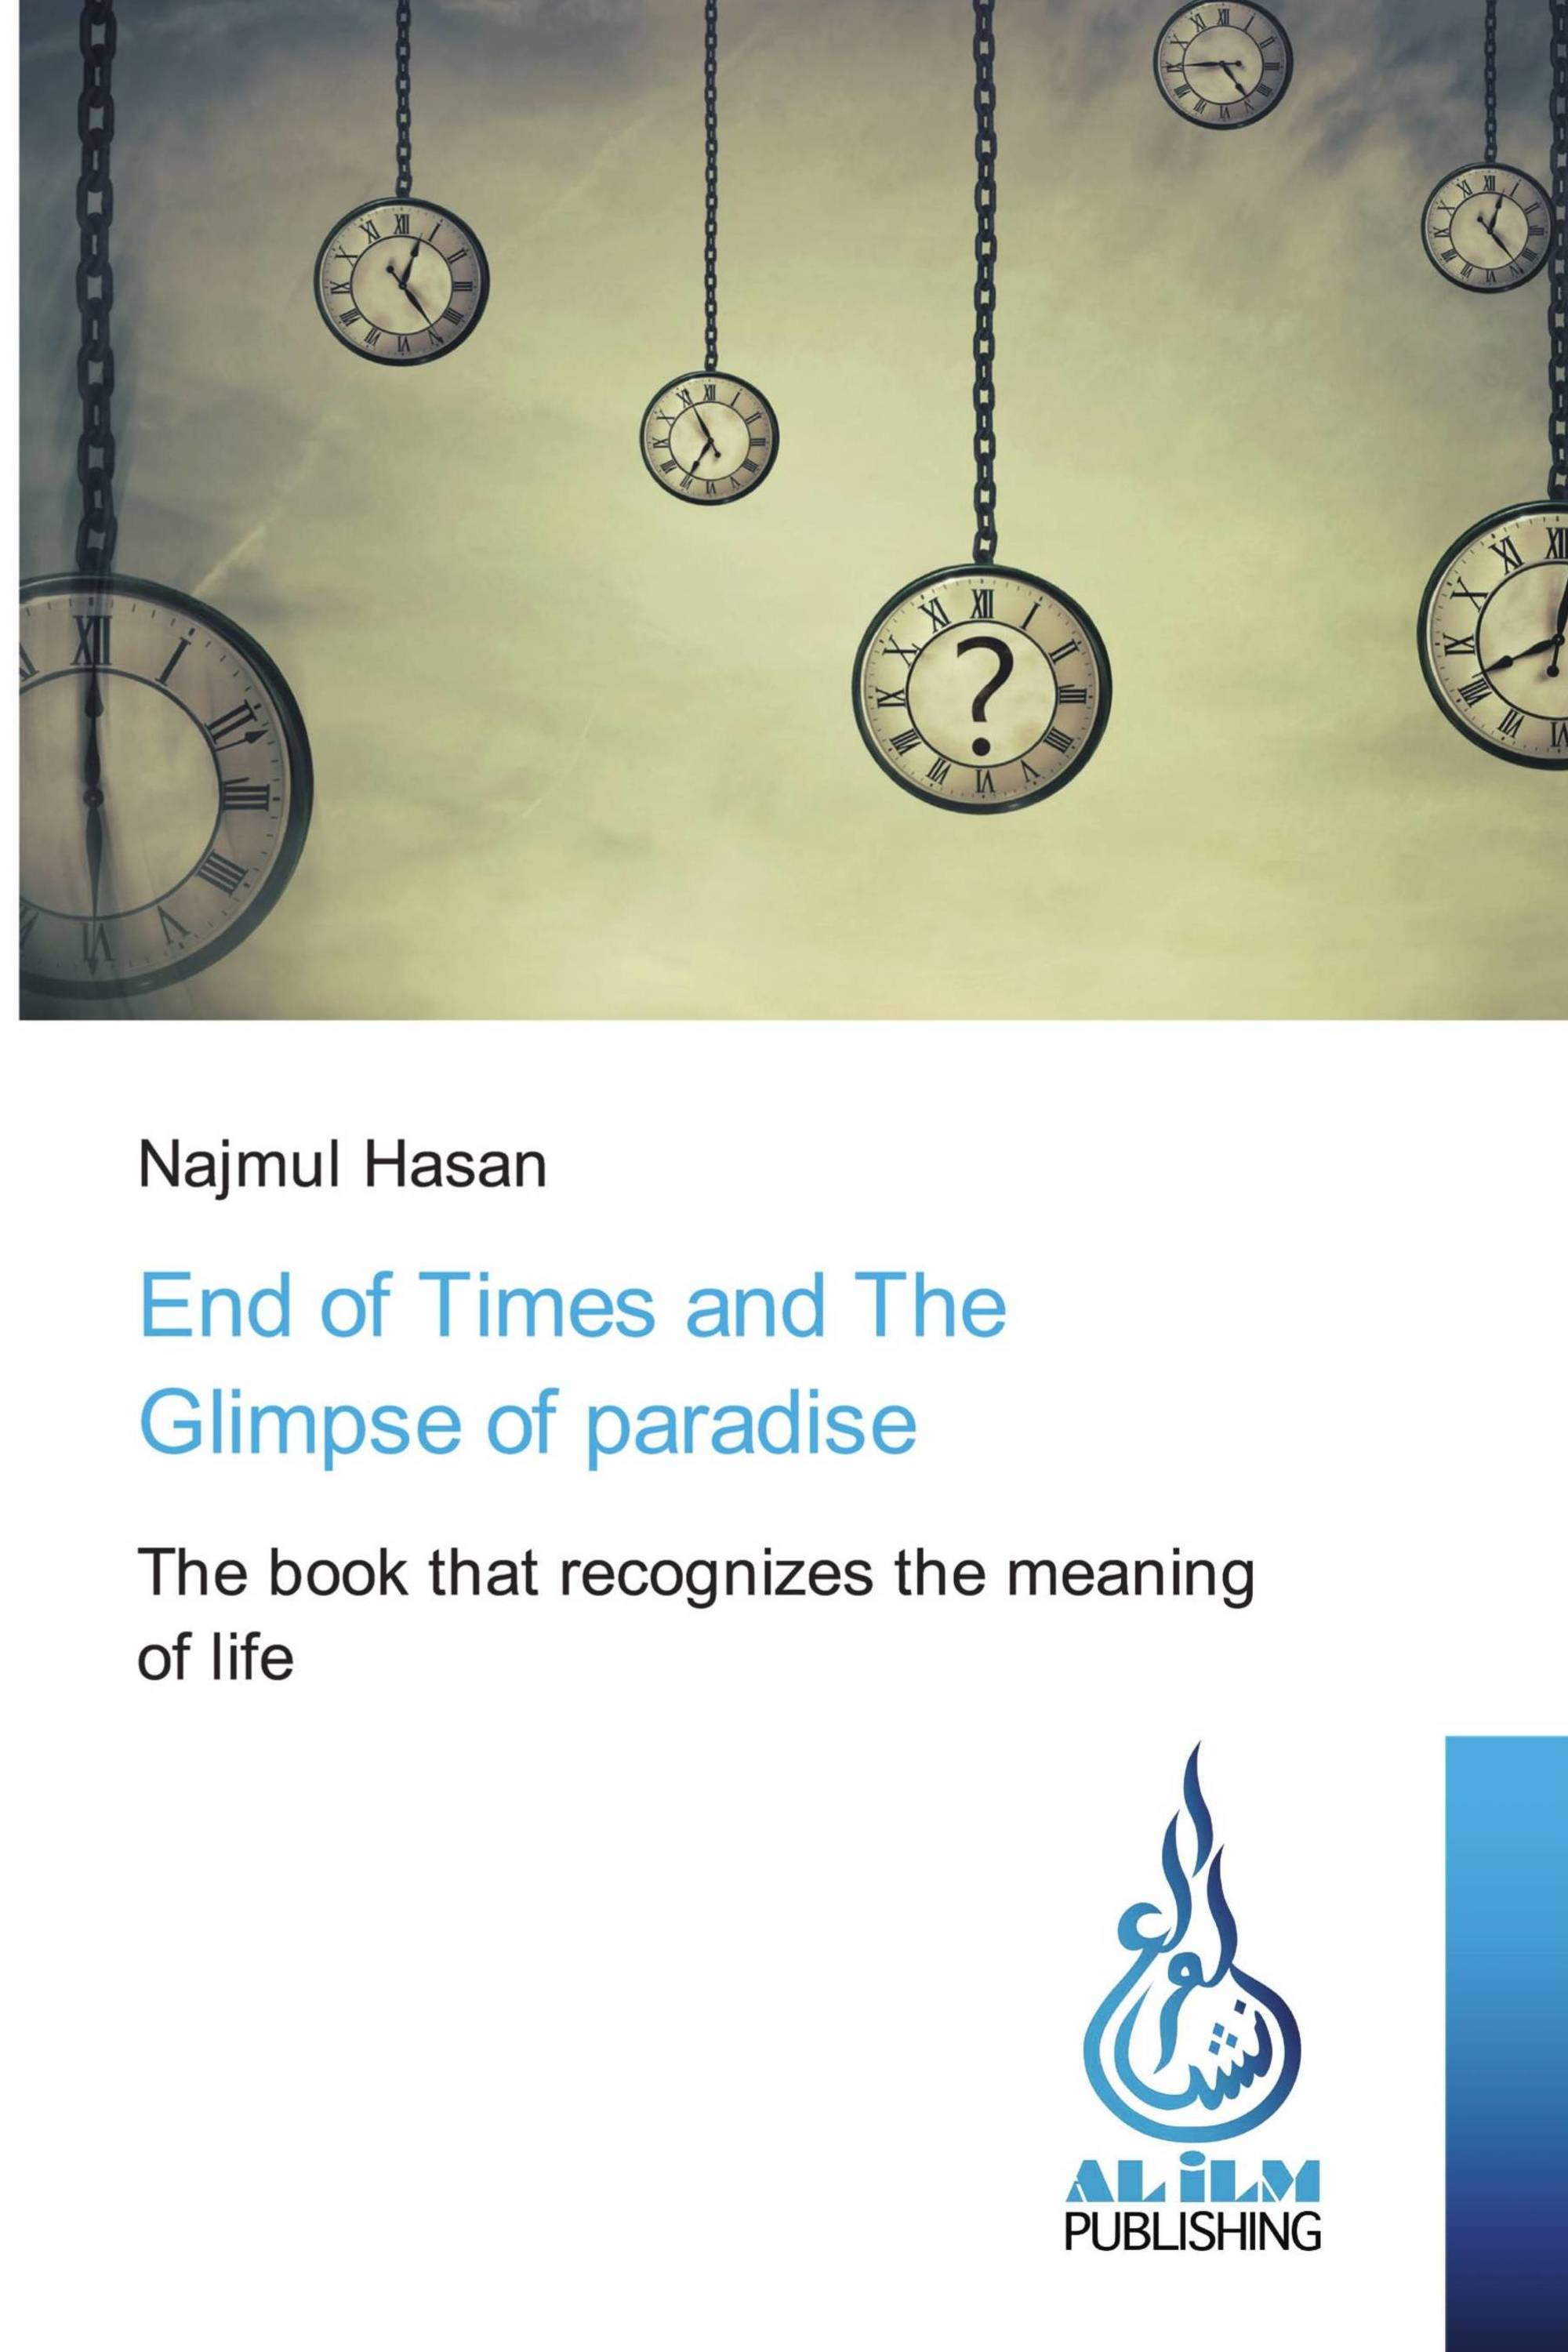 End of Times and The Glimpse of paradise